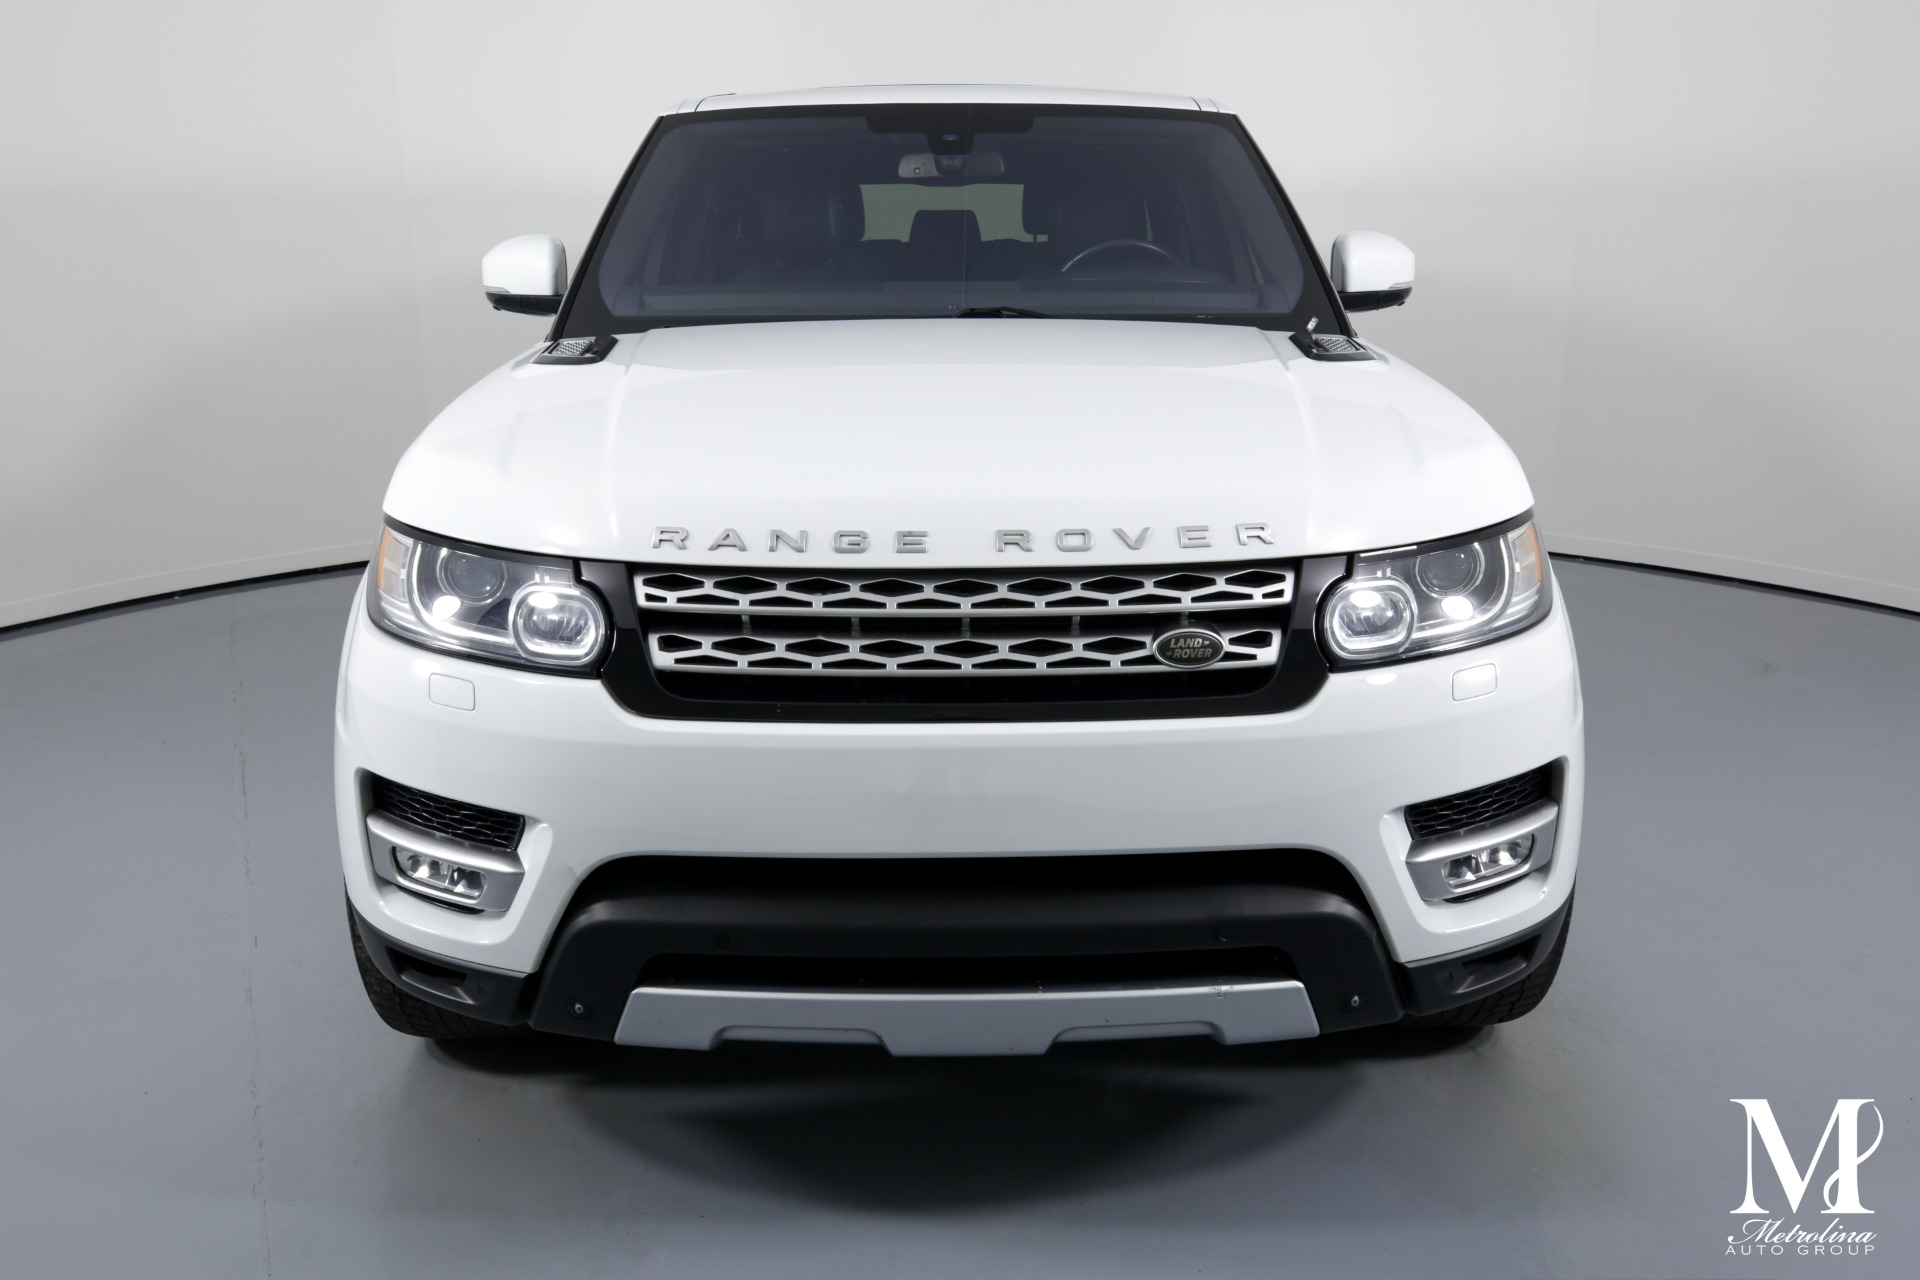 Used 2014 Land Rover Range Rover Sport HSE for sale $36,475 at Metrolina Auto Group in Charlotte NC 28217 - 3